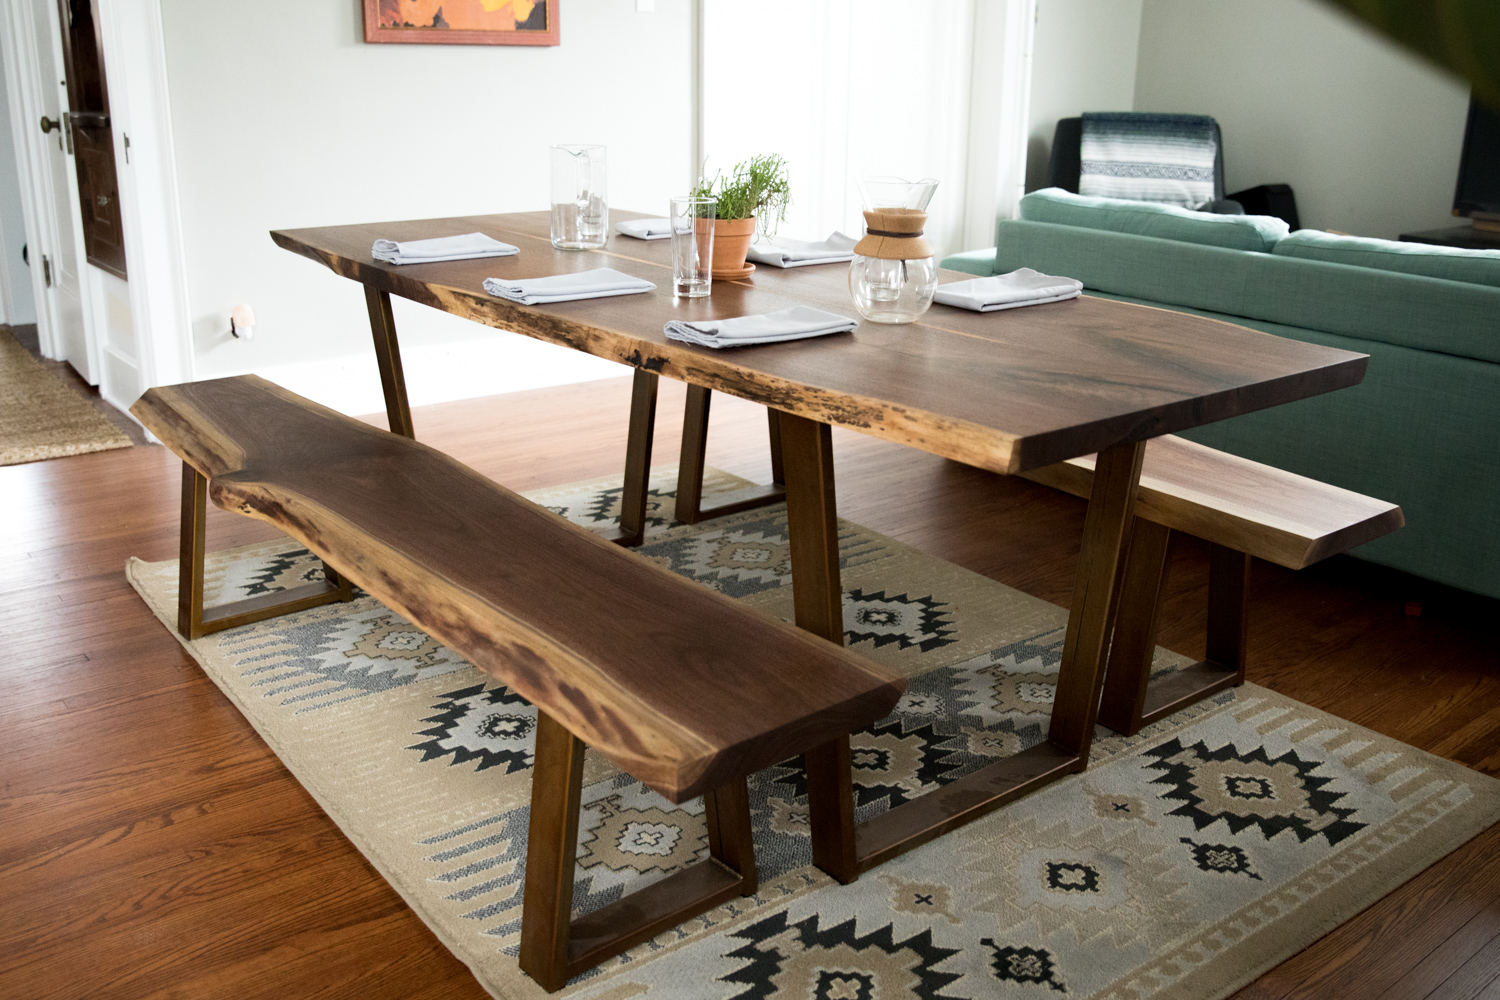 Big Tooth Co_Fort Wayne Indianapolis Woodworking _Walnut Dining Table (26 of 51).jpg